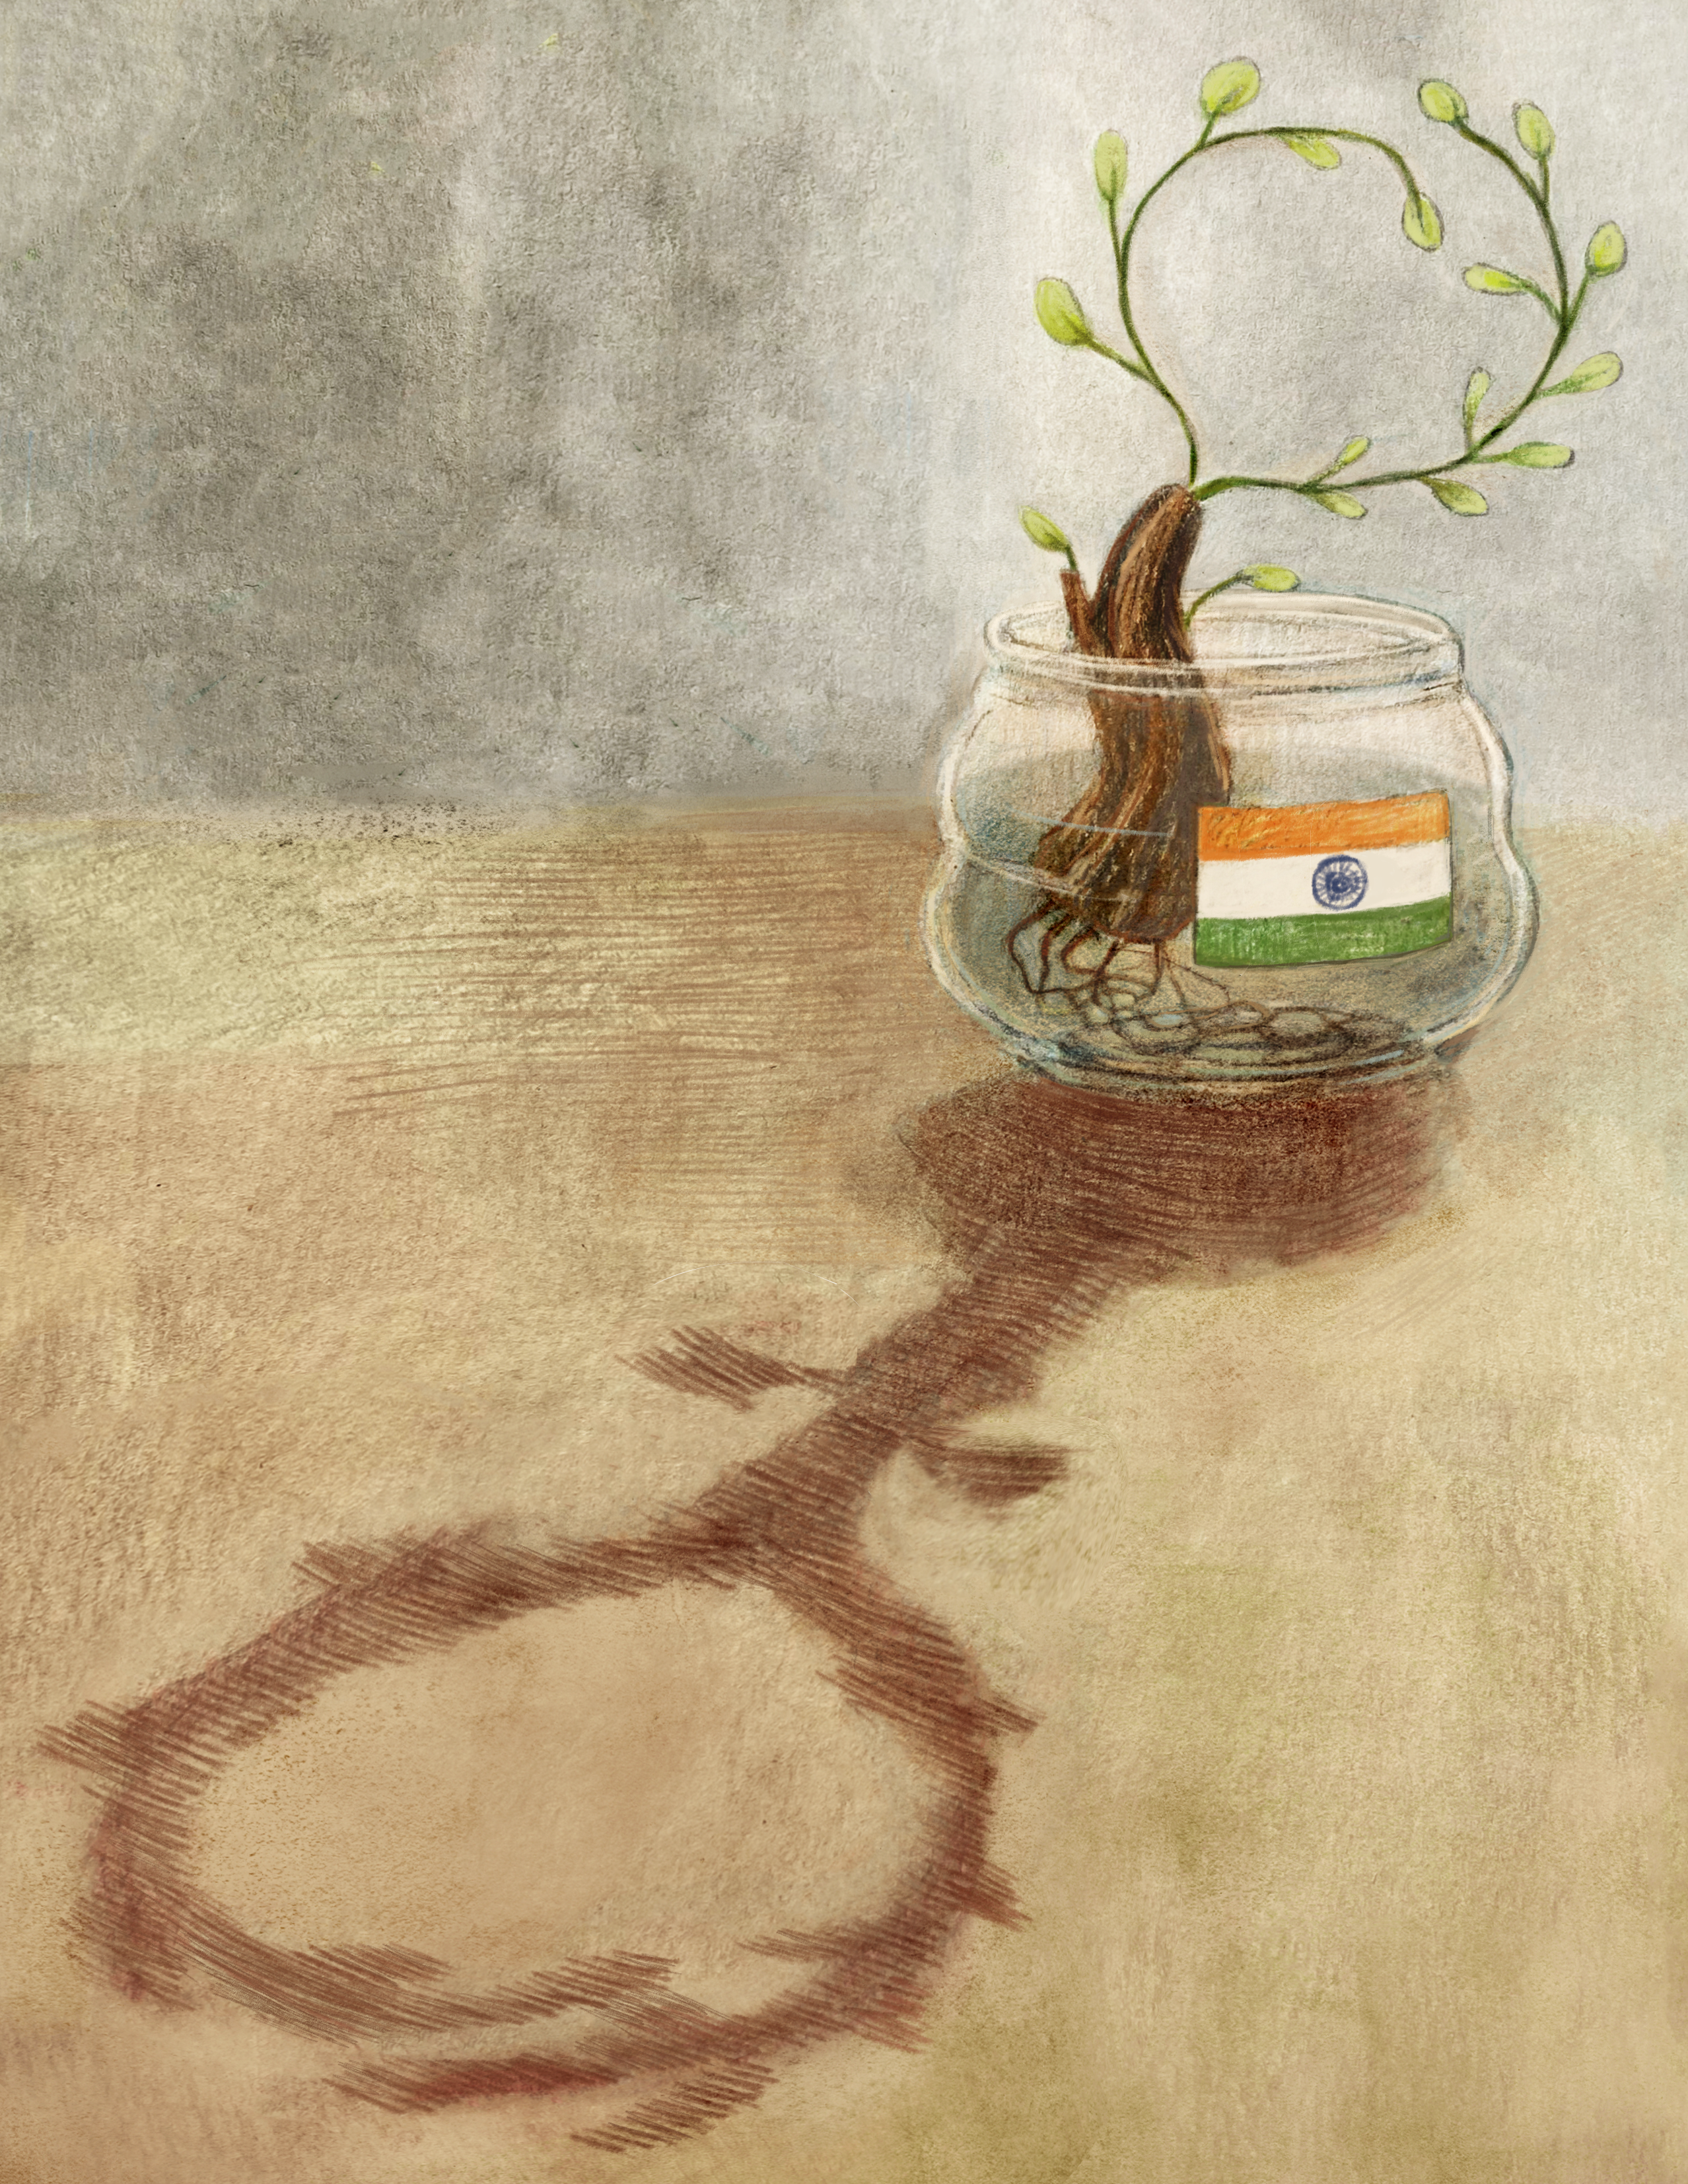 A small plant, contained in a jar with a label of the flag of India, is propagated. Its shadow resembles the female gender symbol.